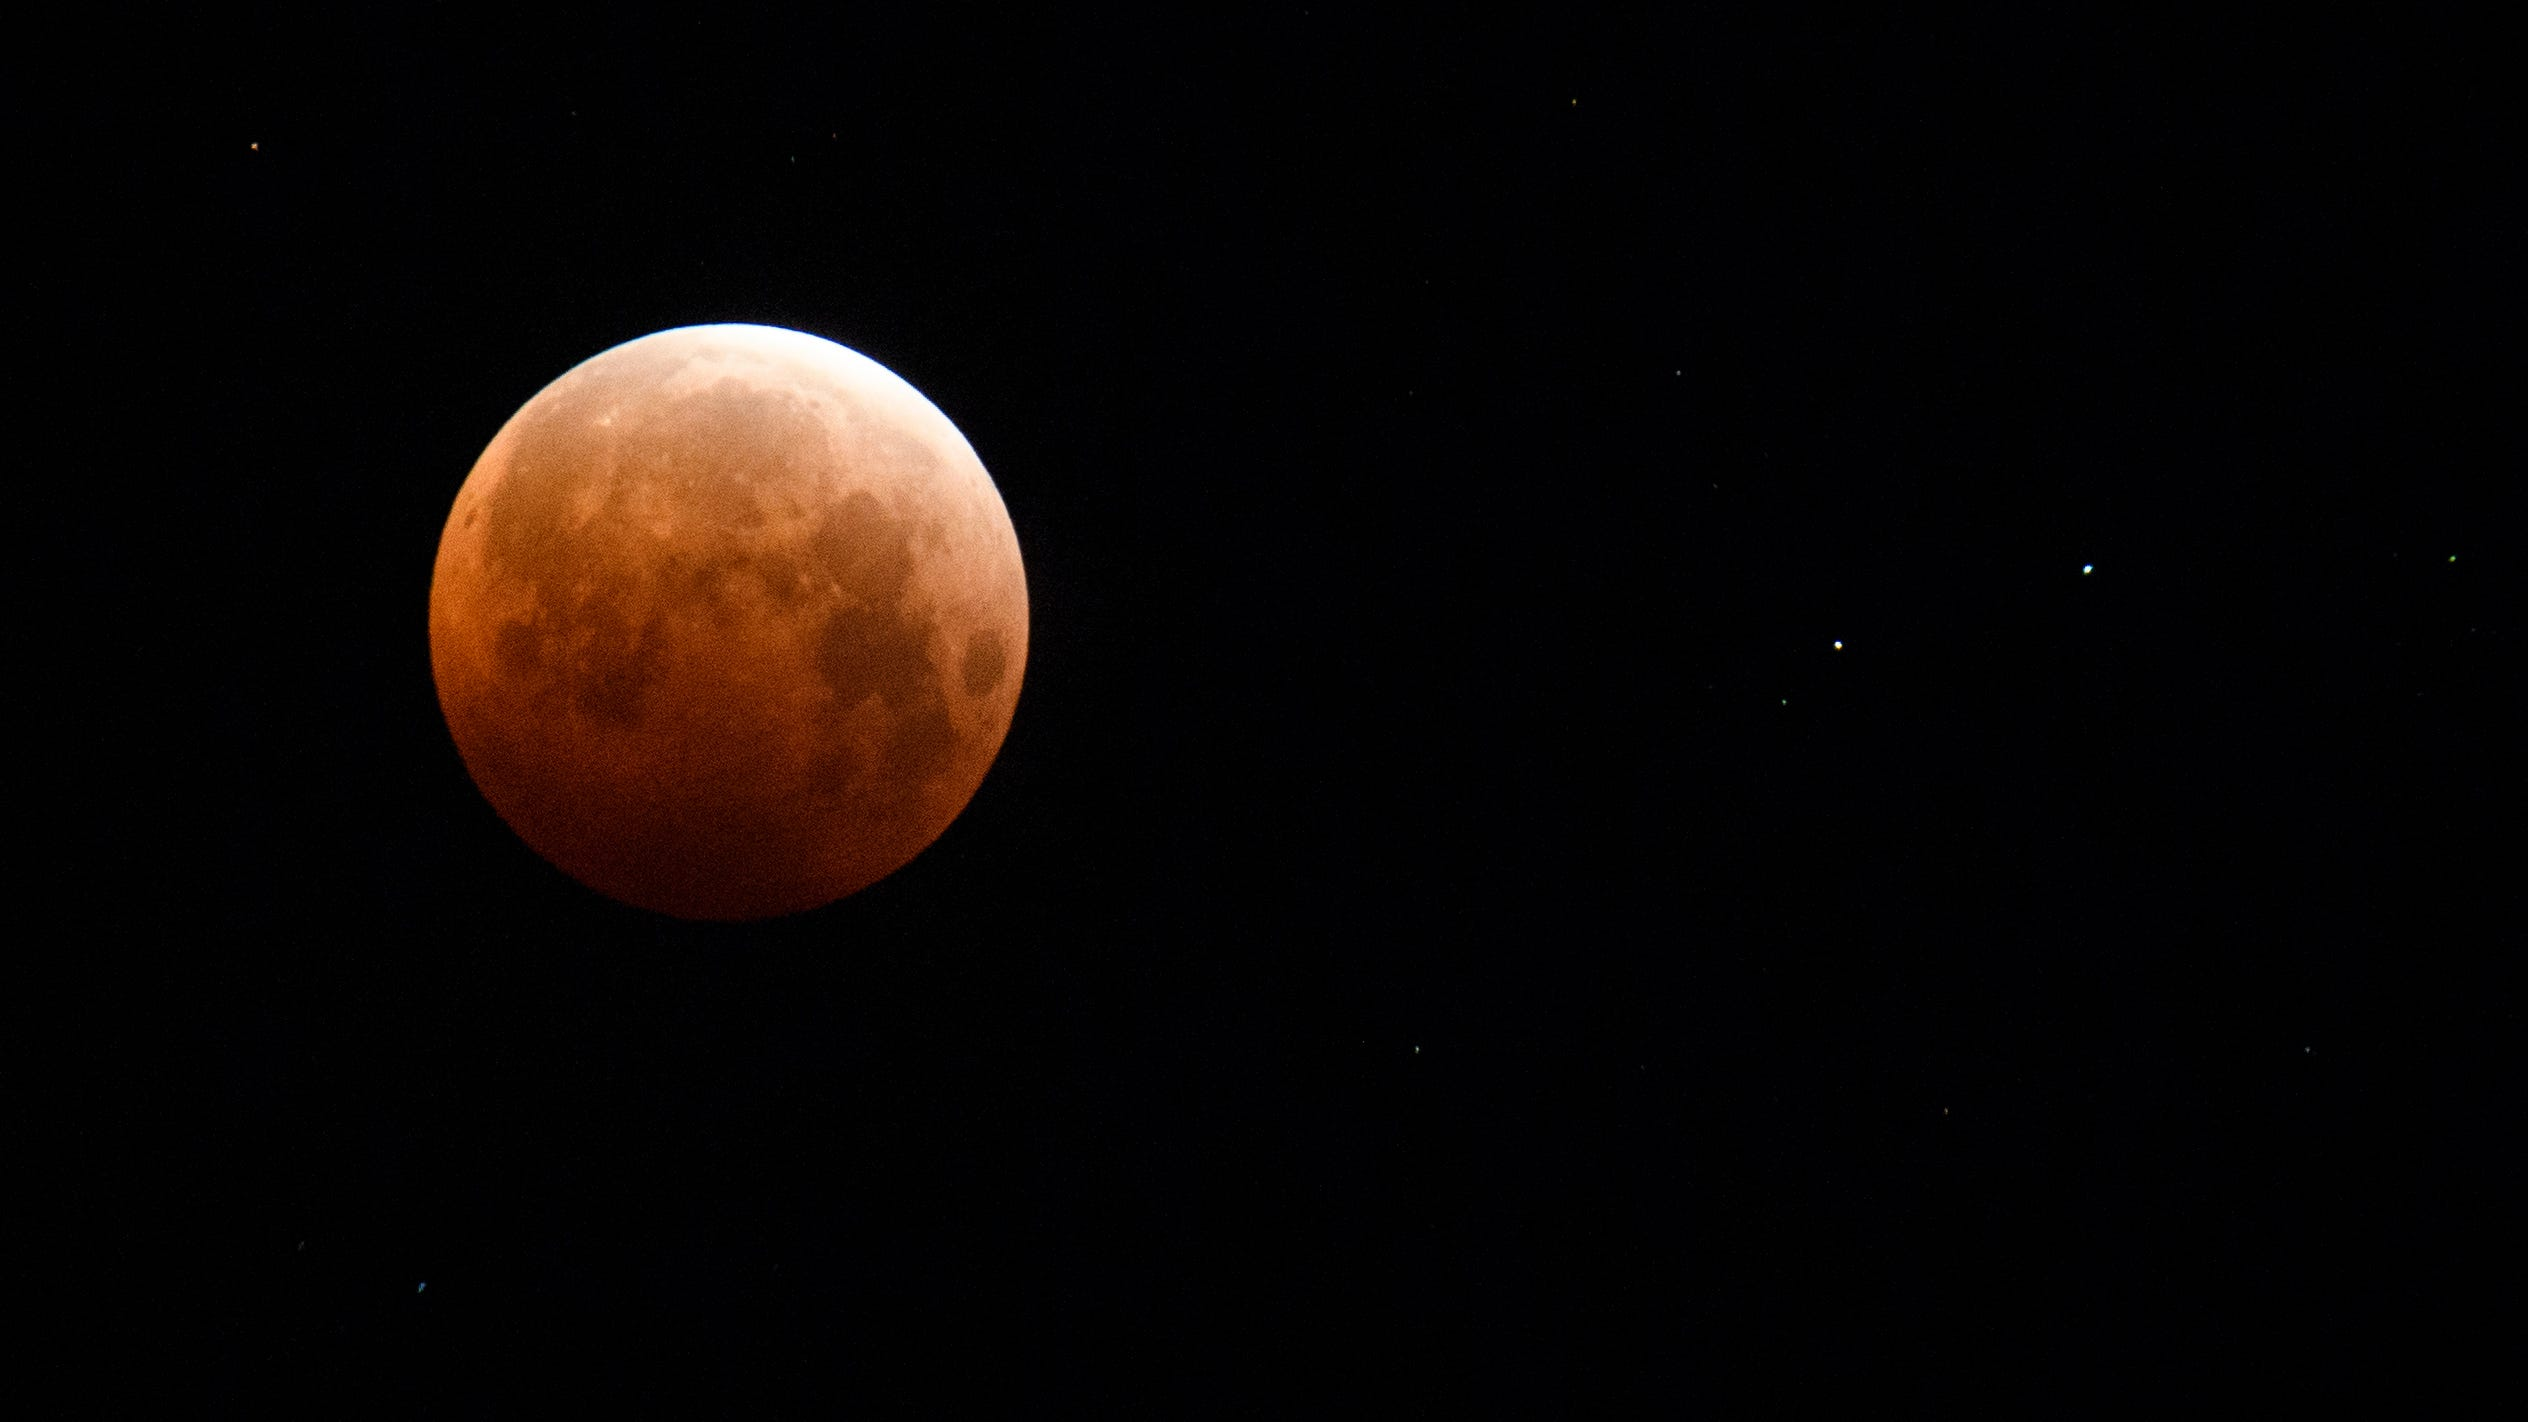 A full moon is seen during totality of a total lunar eclipse as the moon enters Earth's shadow for a